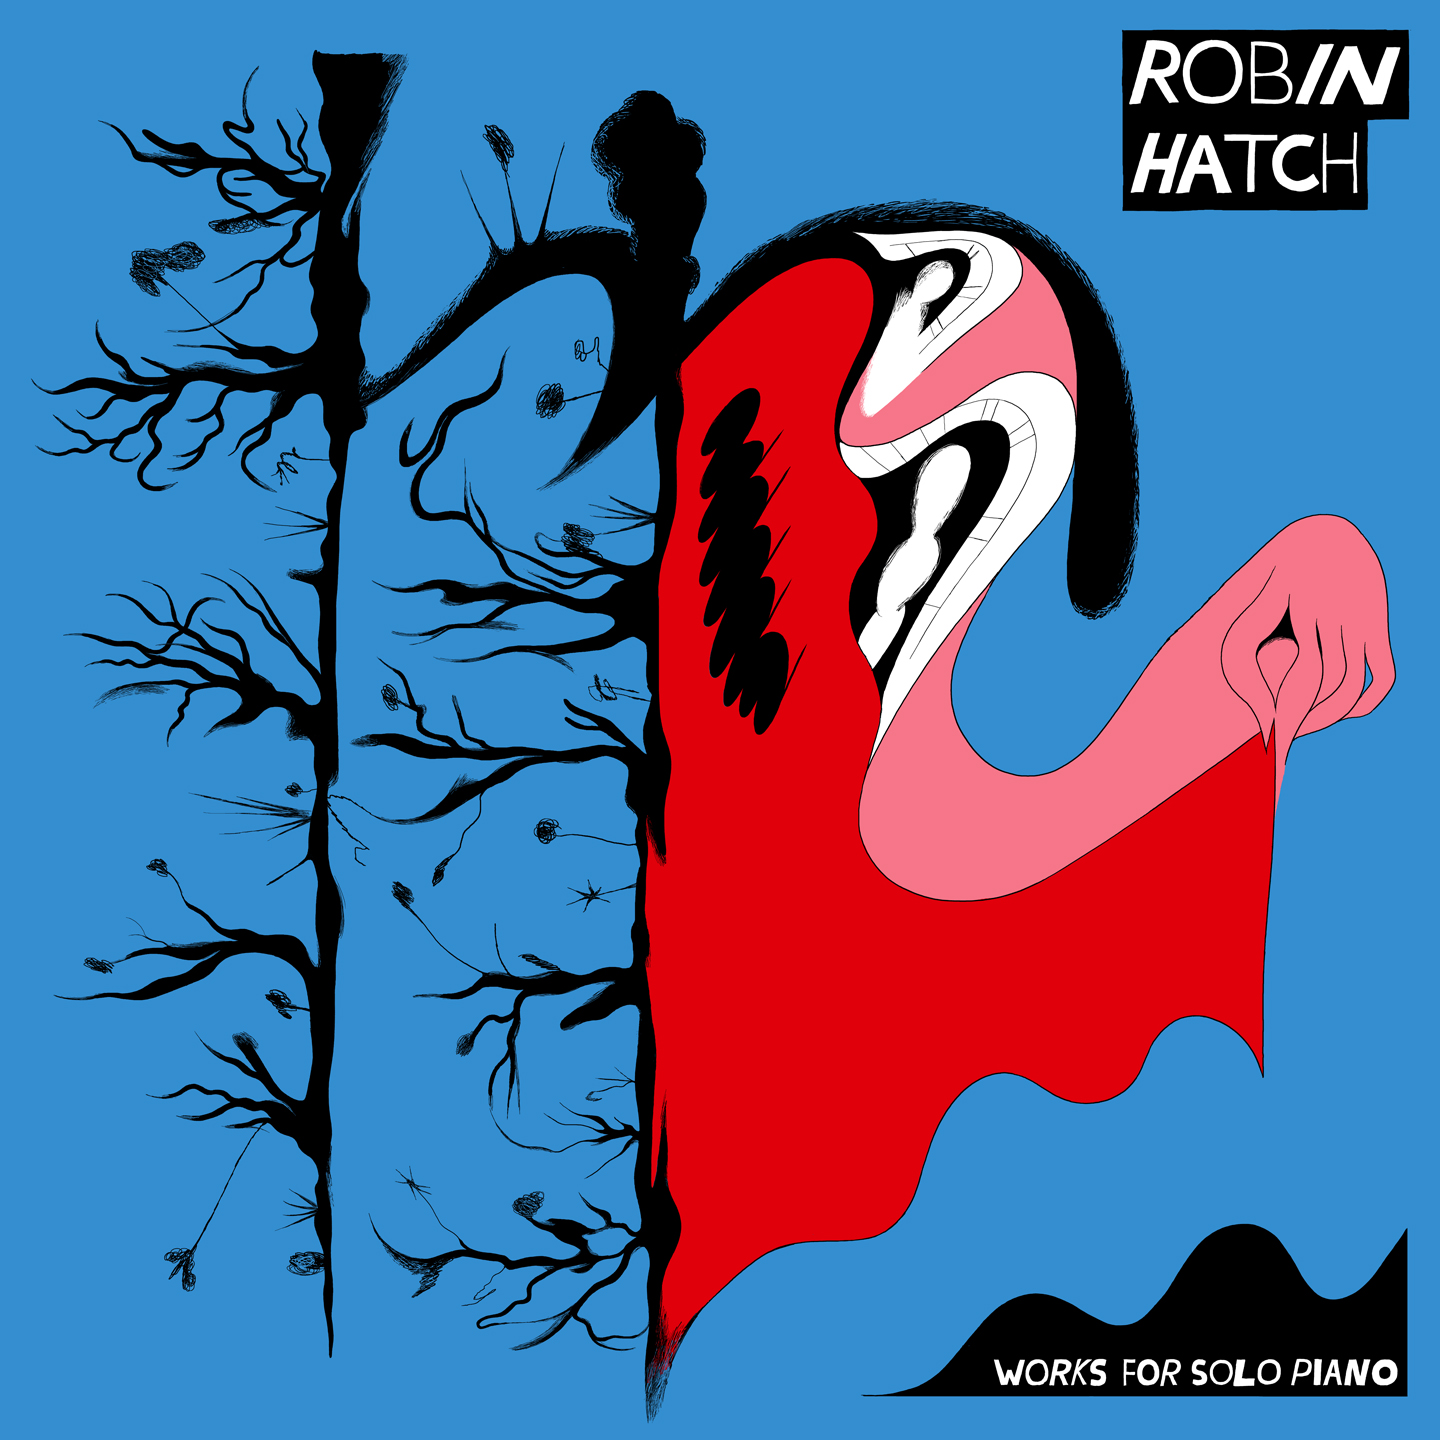 Album artwork for Robin Hatch